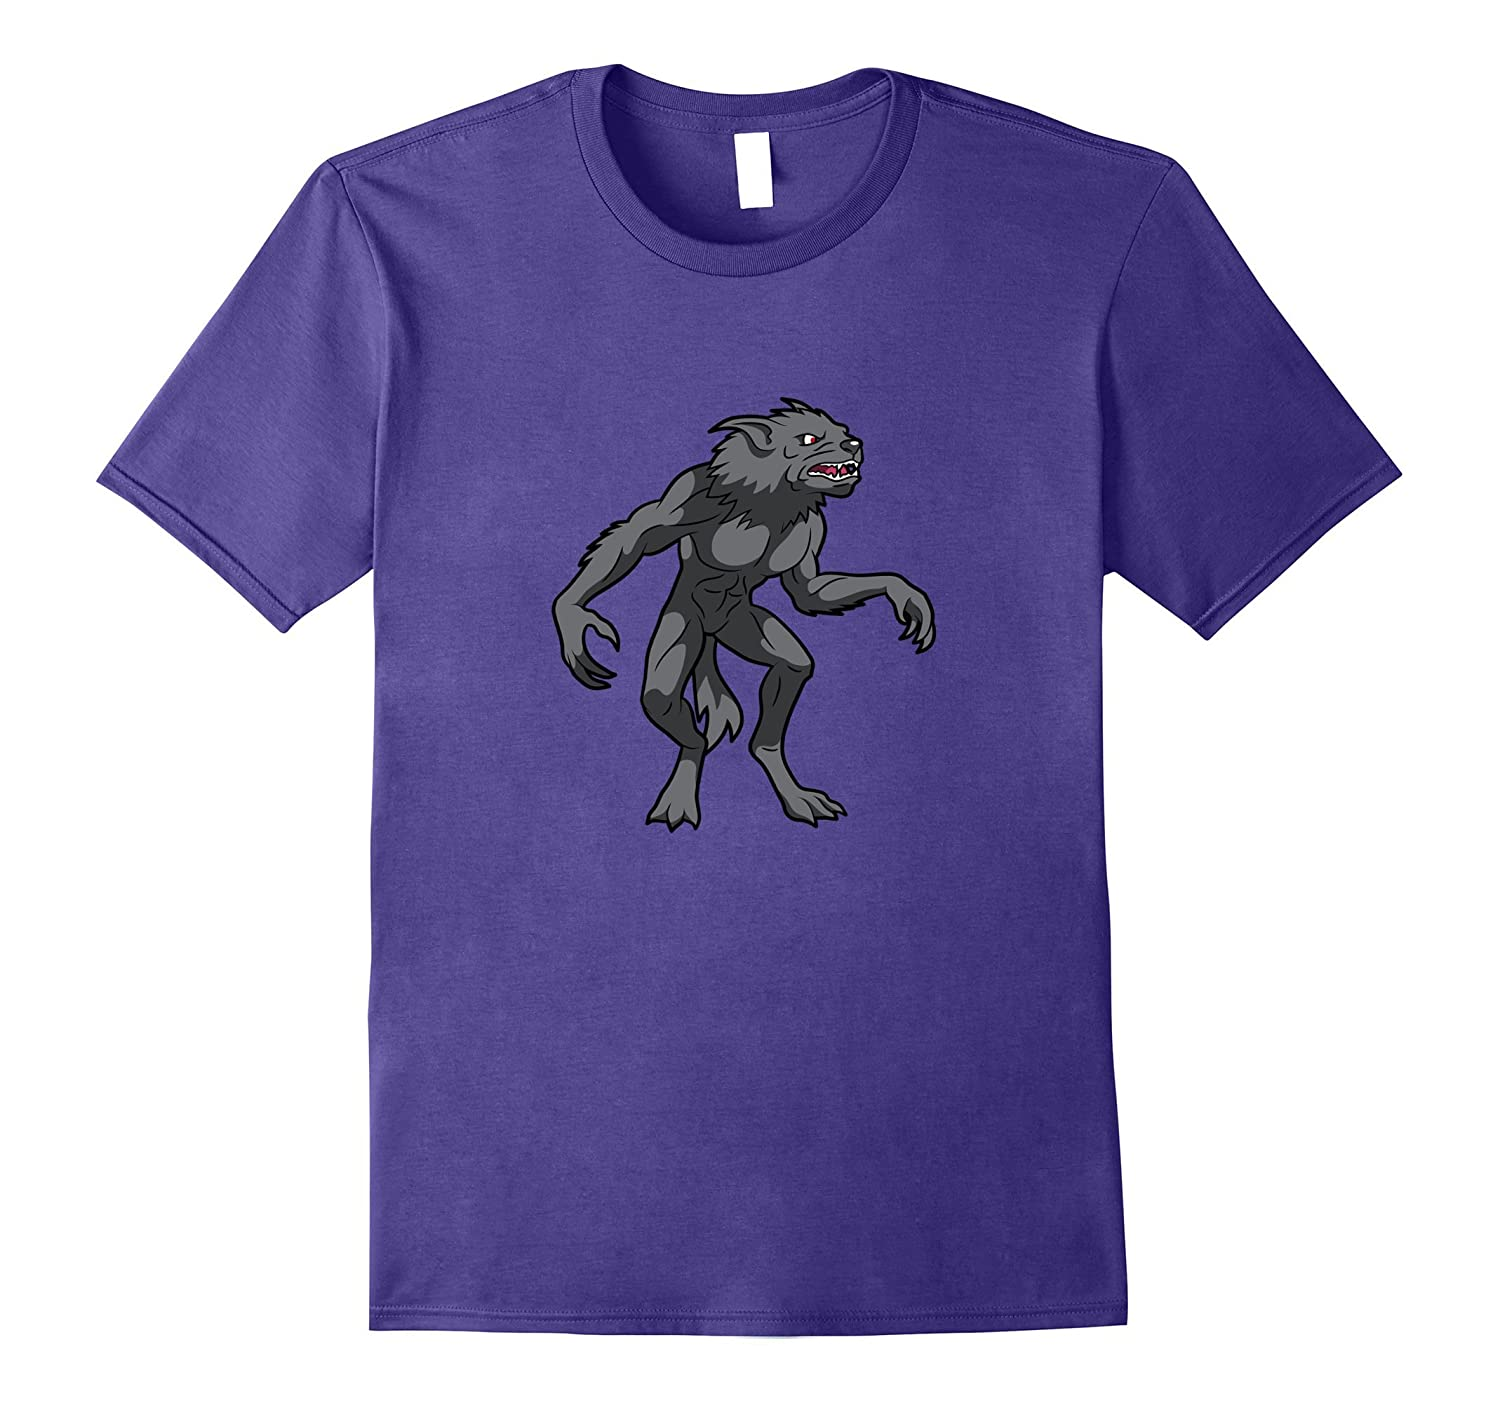 Werewolf Horror Monster Beast T-Shirt-TJ